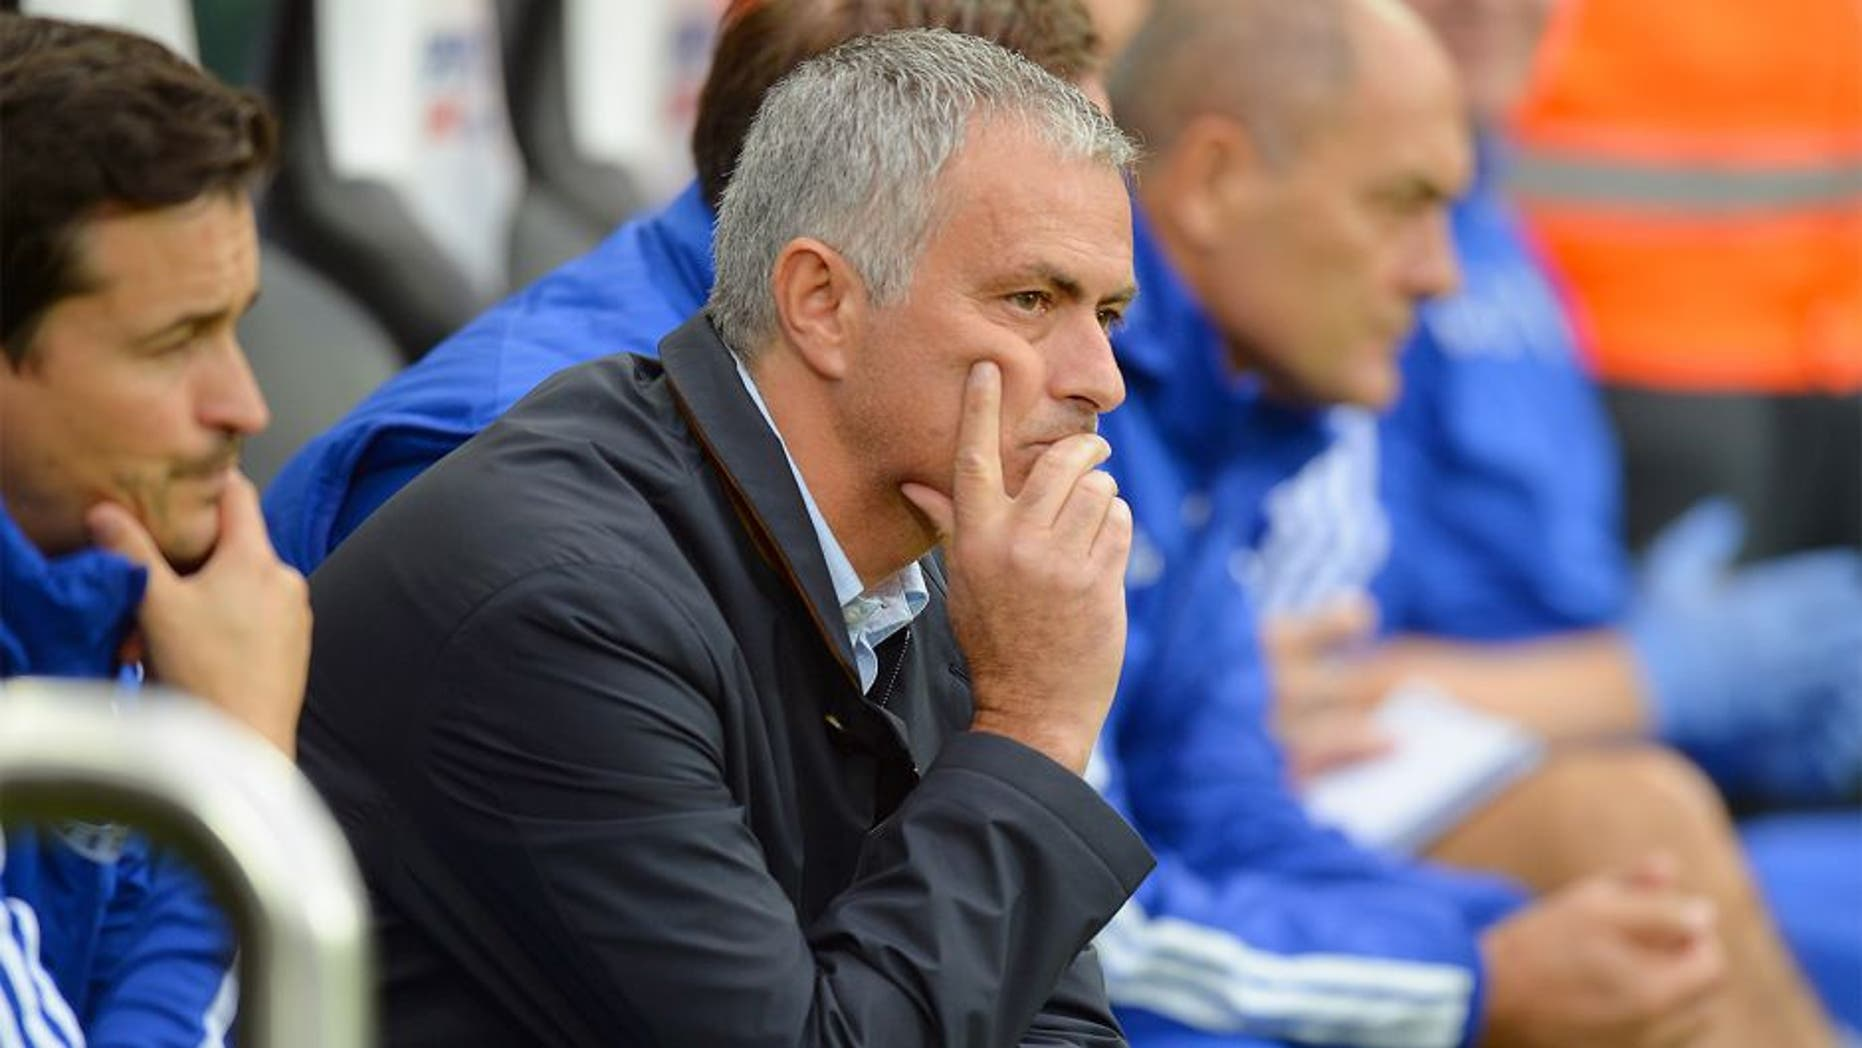 NEWCASTLE UPON TYNE, ENGLAND - SEPTEMBER 26: Jose Mourinho manager of Chelsea looks on during the Barclays Premier League match between Newcastle United and Chelsea at St James' Park on September 26, 2015 in Newcastle upon Tyne, United Kingdom. (Photo by Tony Marshall/Getty Images)